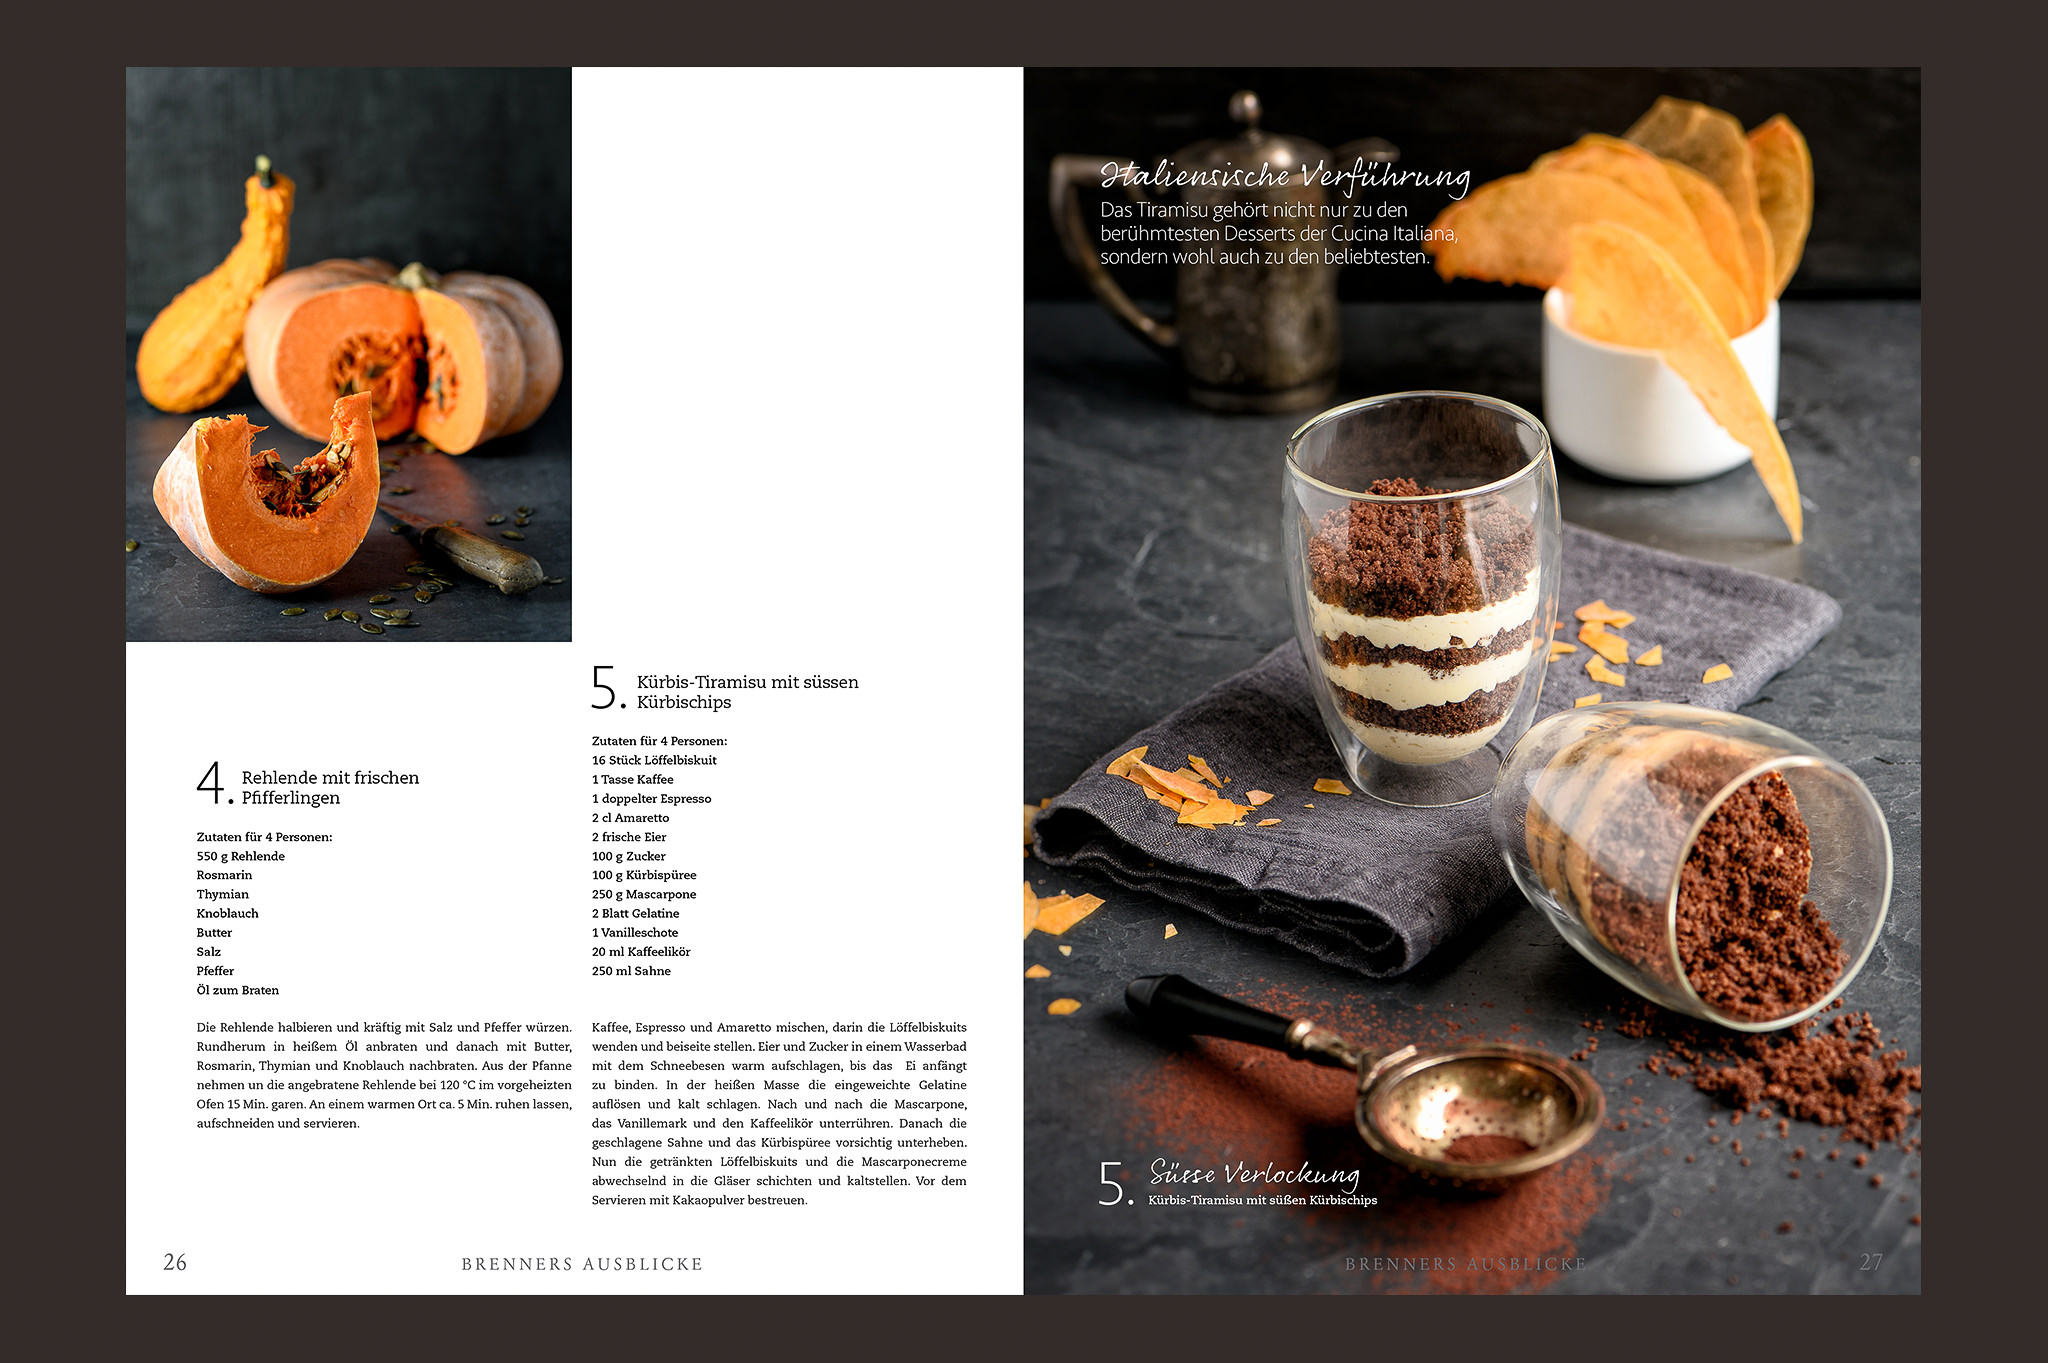 Tear-Sheet-Brenners-Ausblicke-Food-4